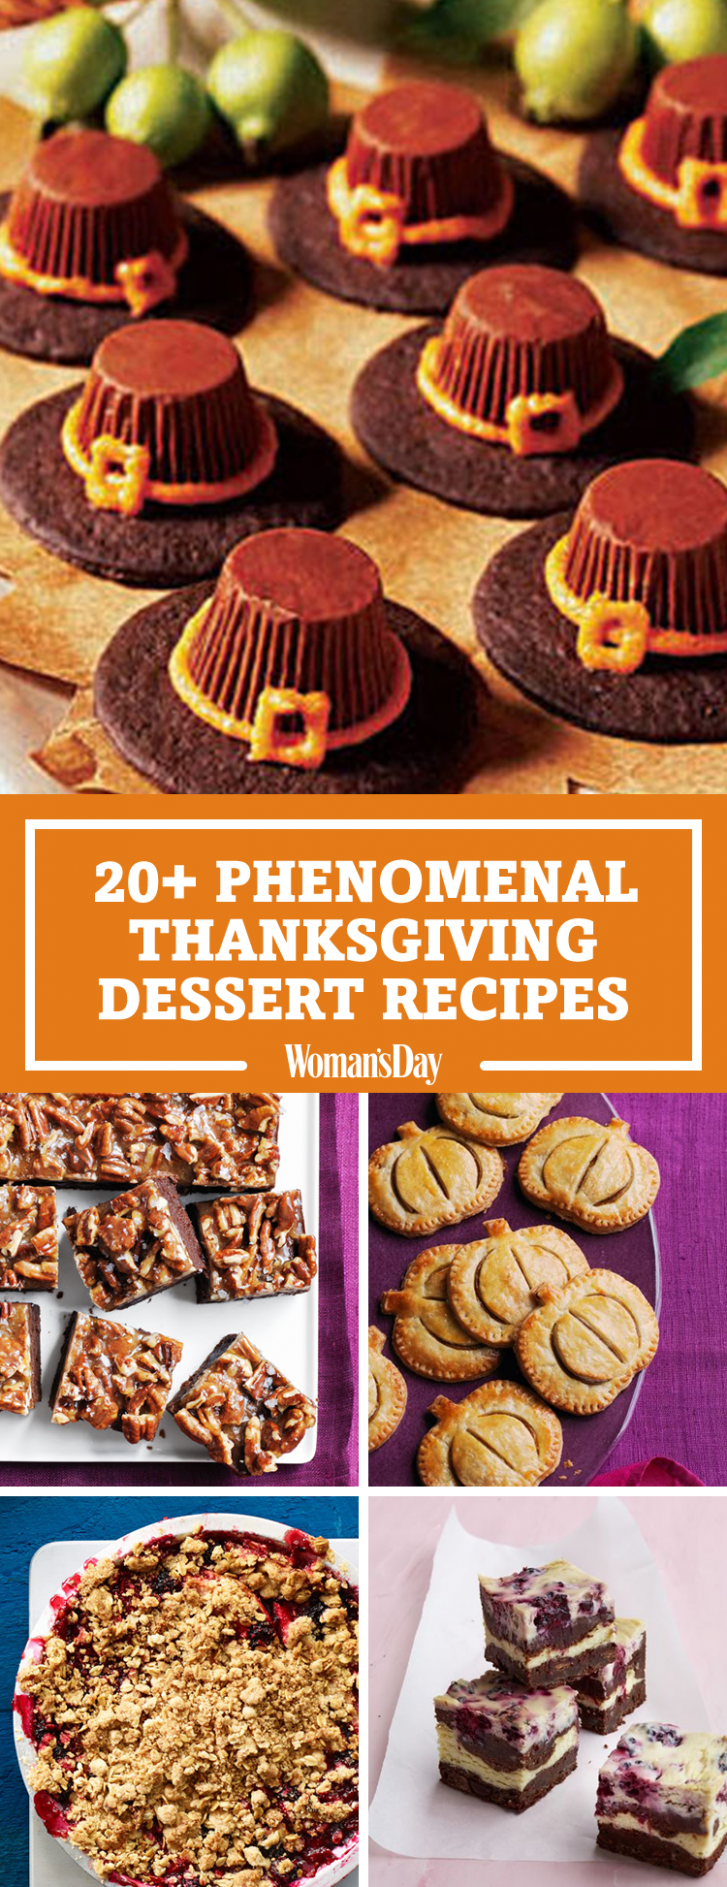 10+ Easy Thanksgiving Desserts - Best Recipes for Thanksgiving Sweets - Recipes Dessert Thanksgiving